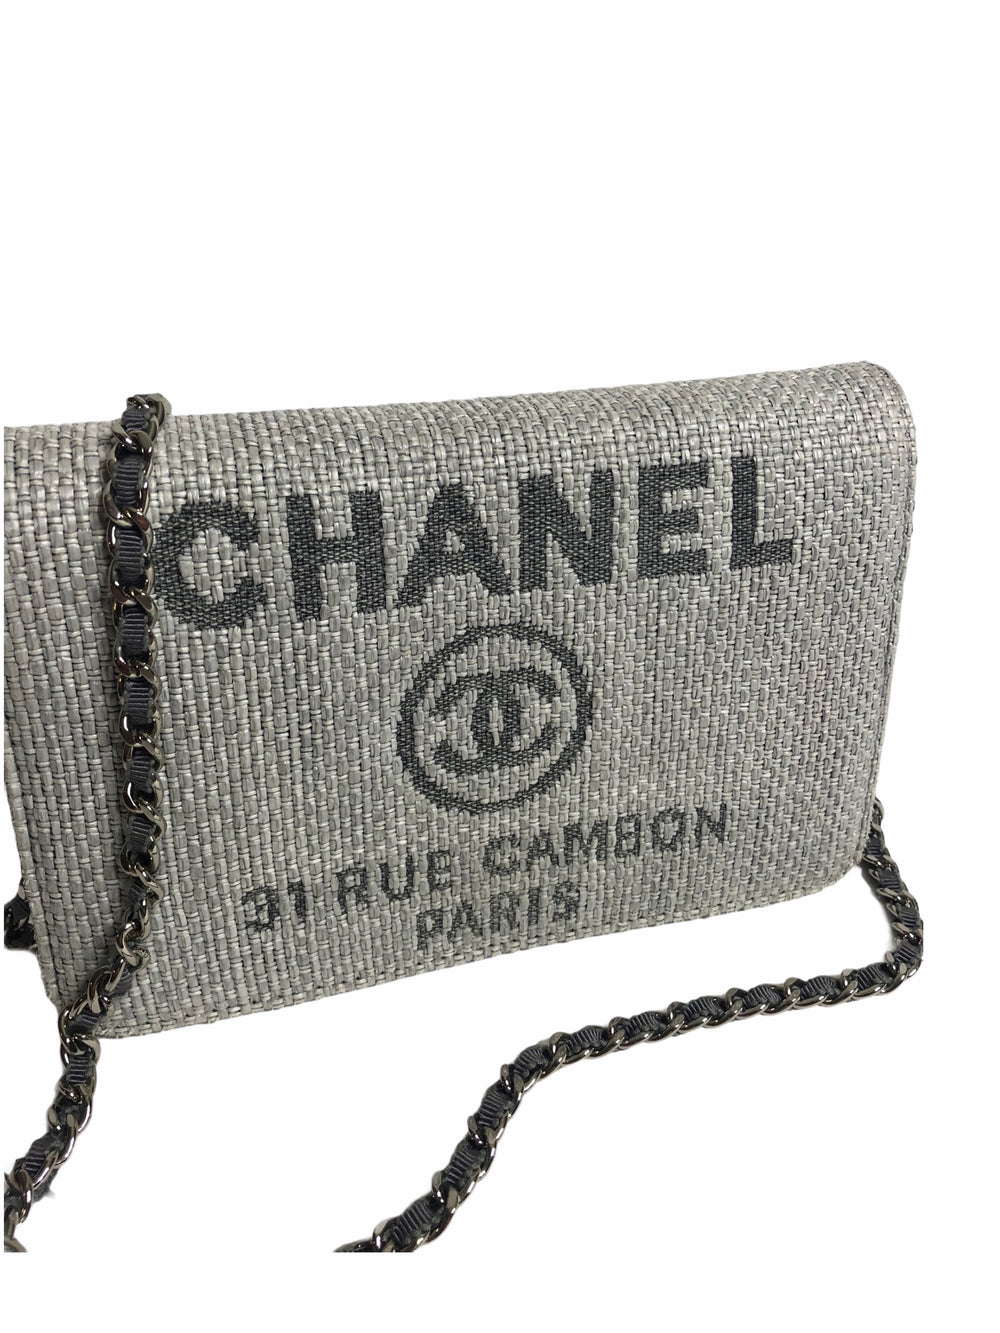 Chanel Cream/Grey Canvas Wallet on Chain - As Seen on Instagram 18/11/20